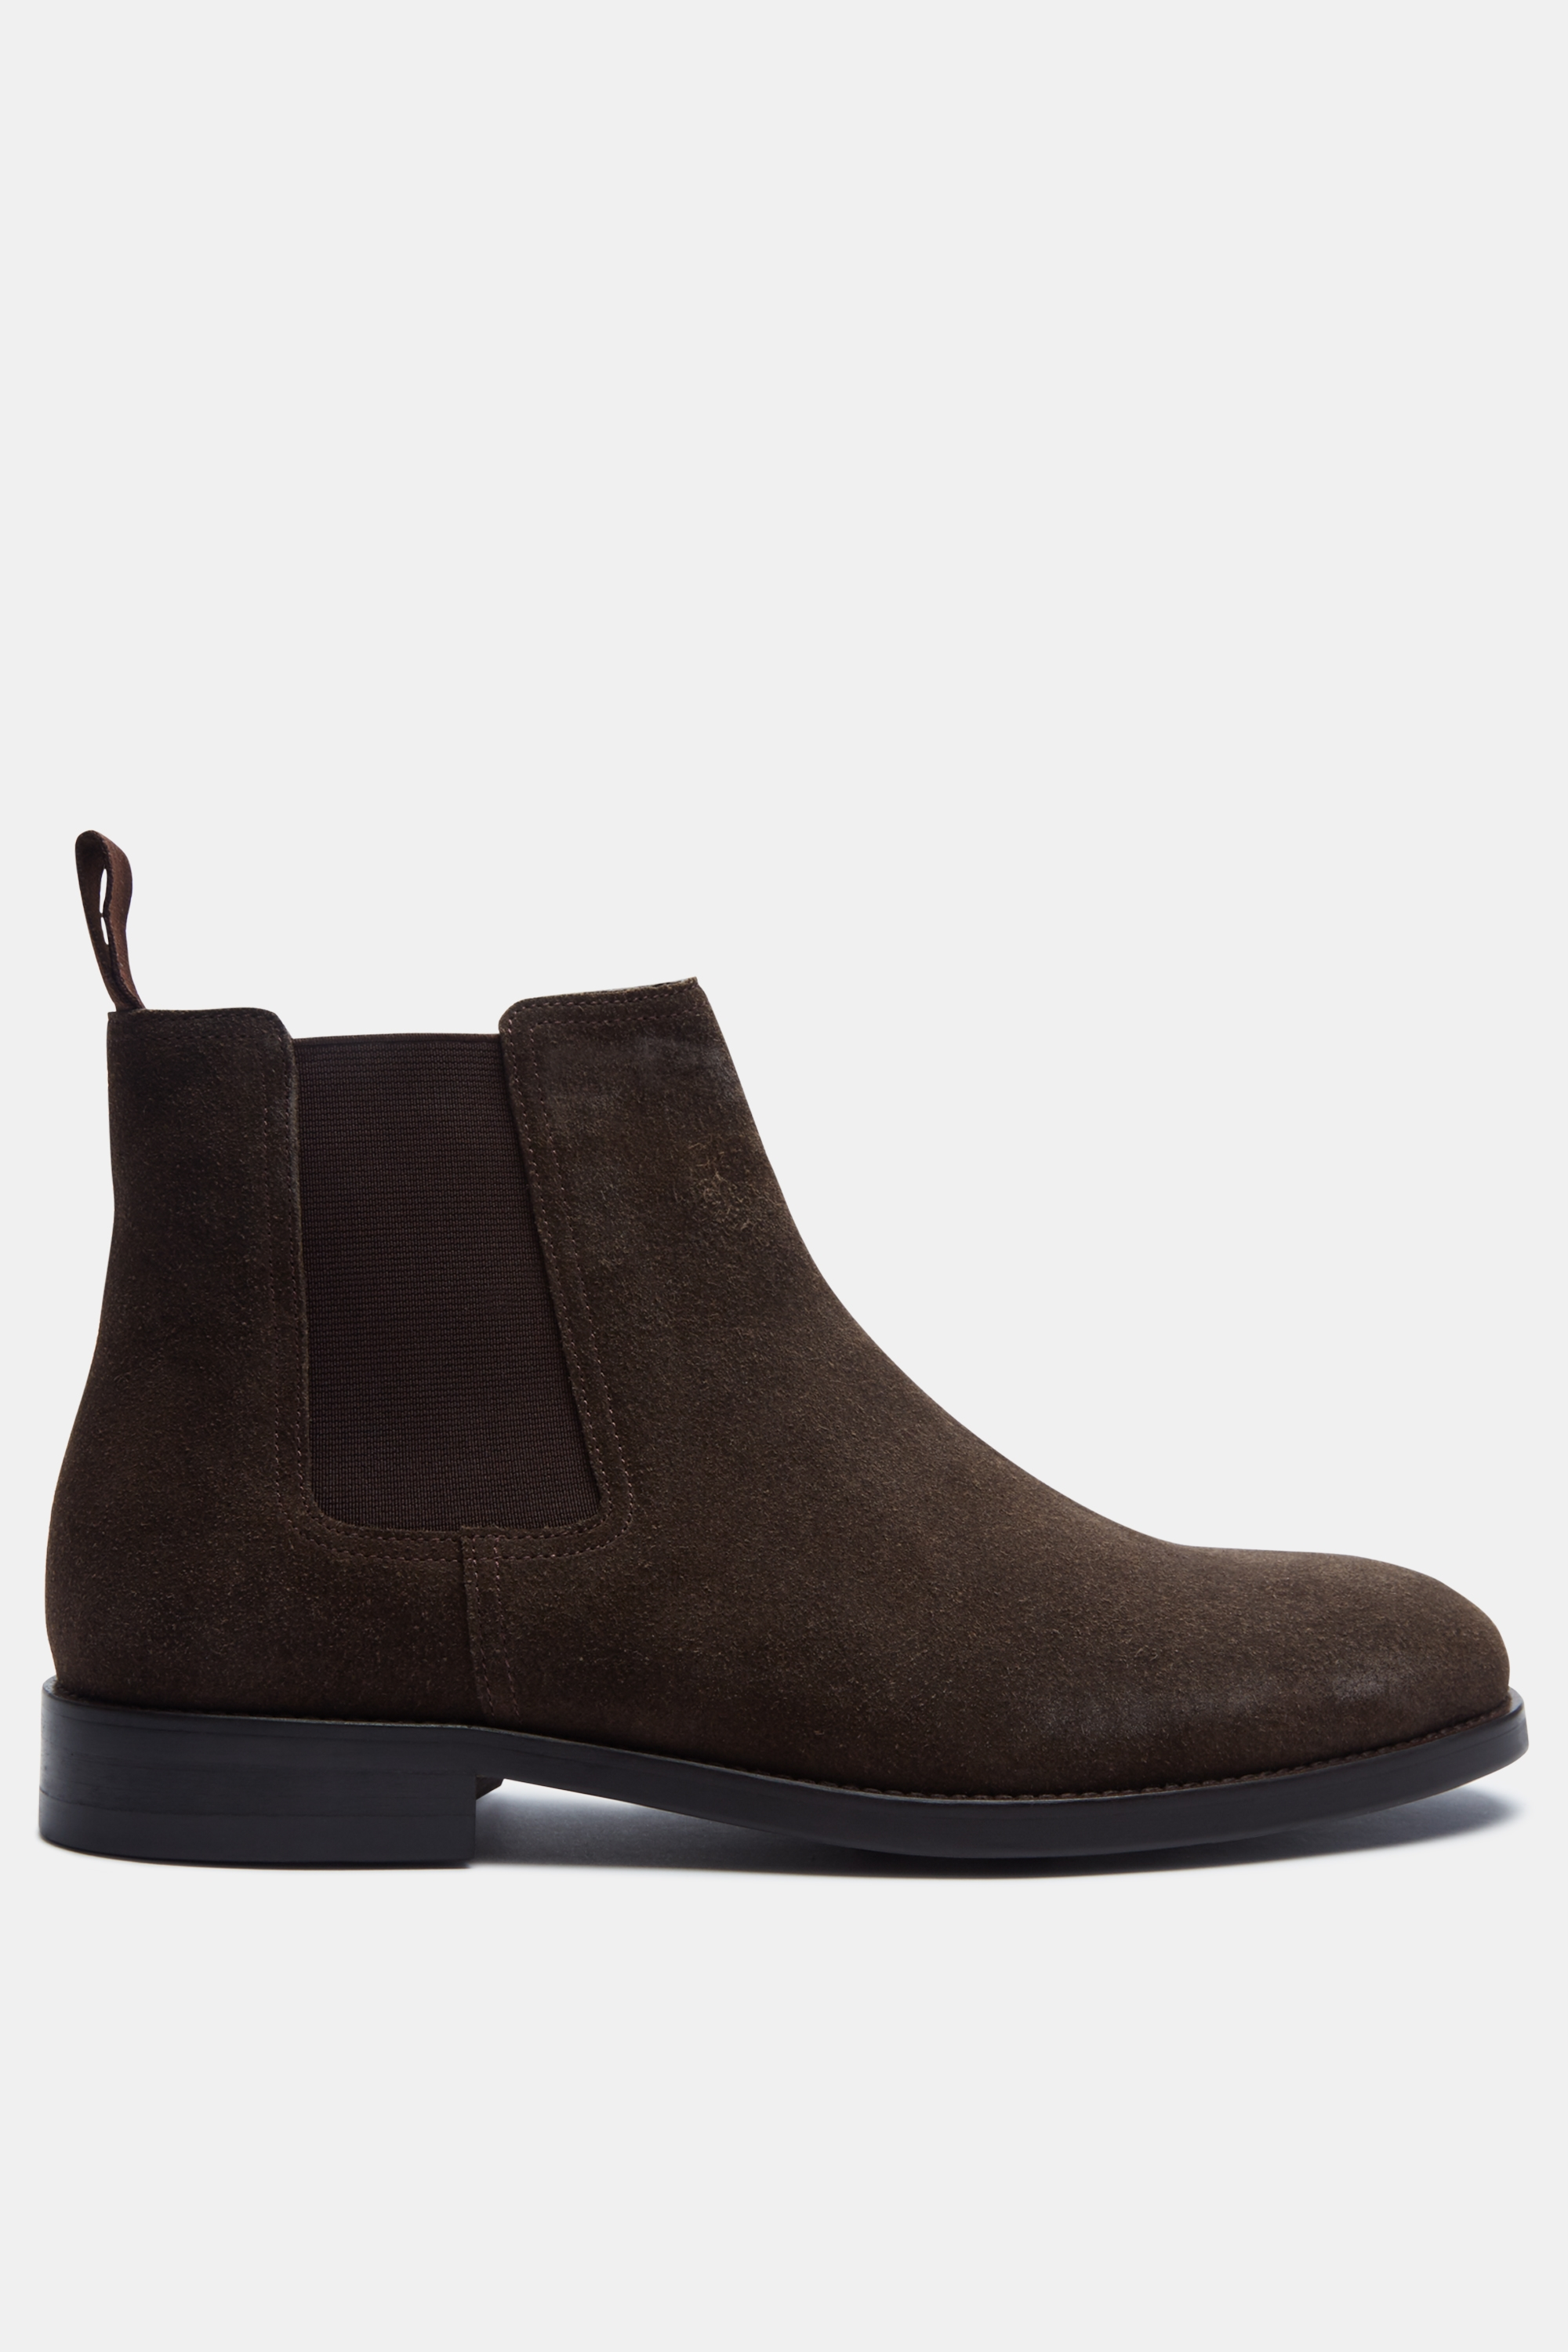 John White Piccadilly Brown Suede